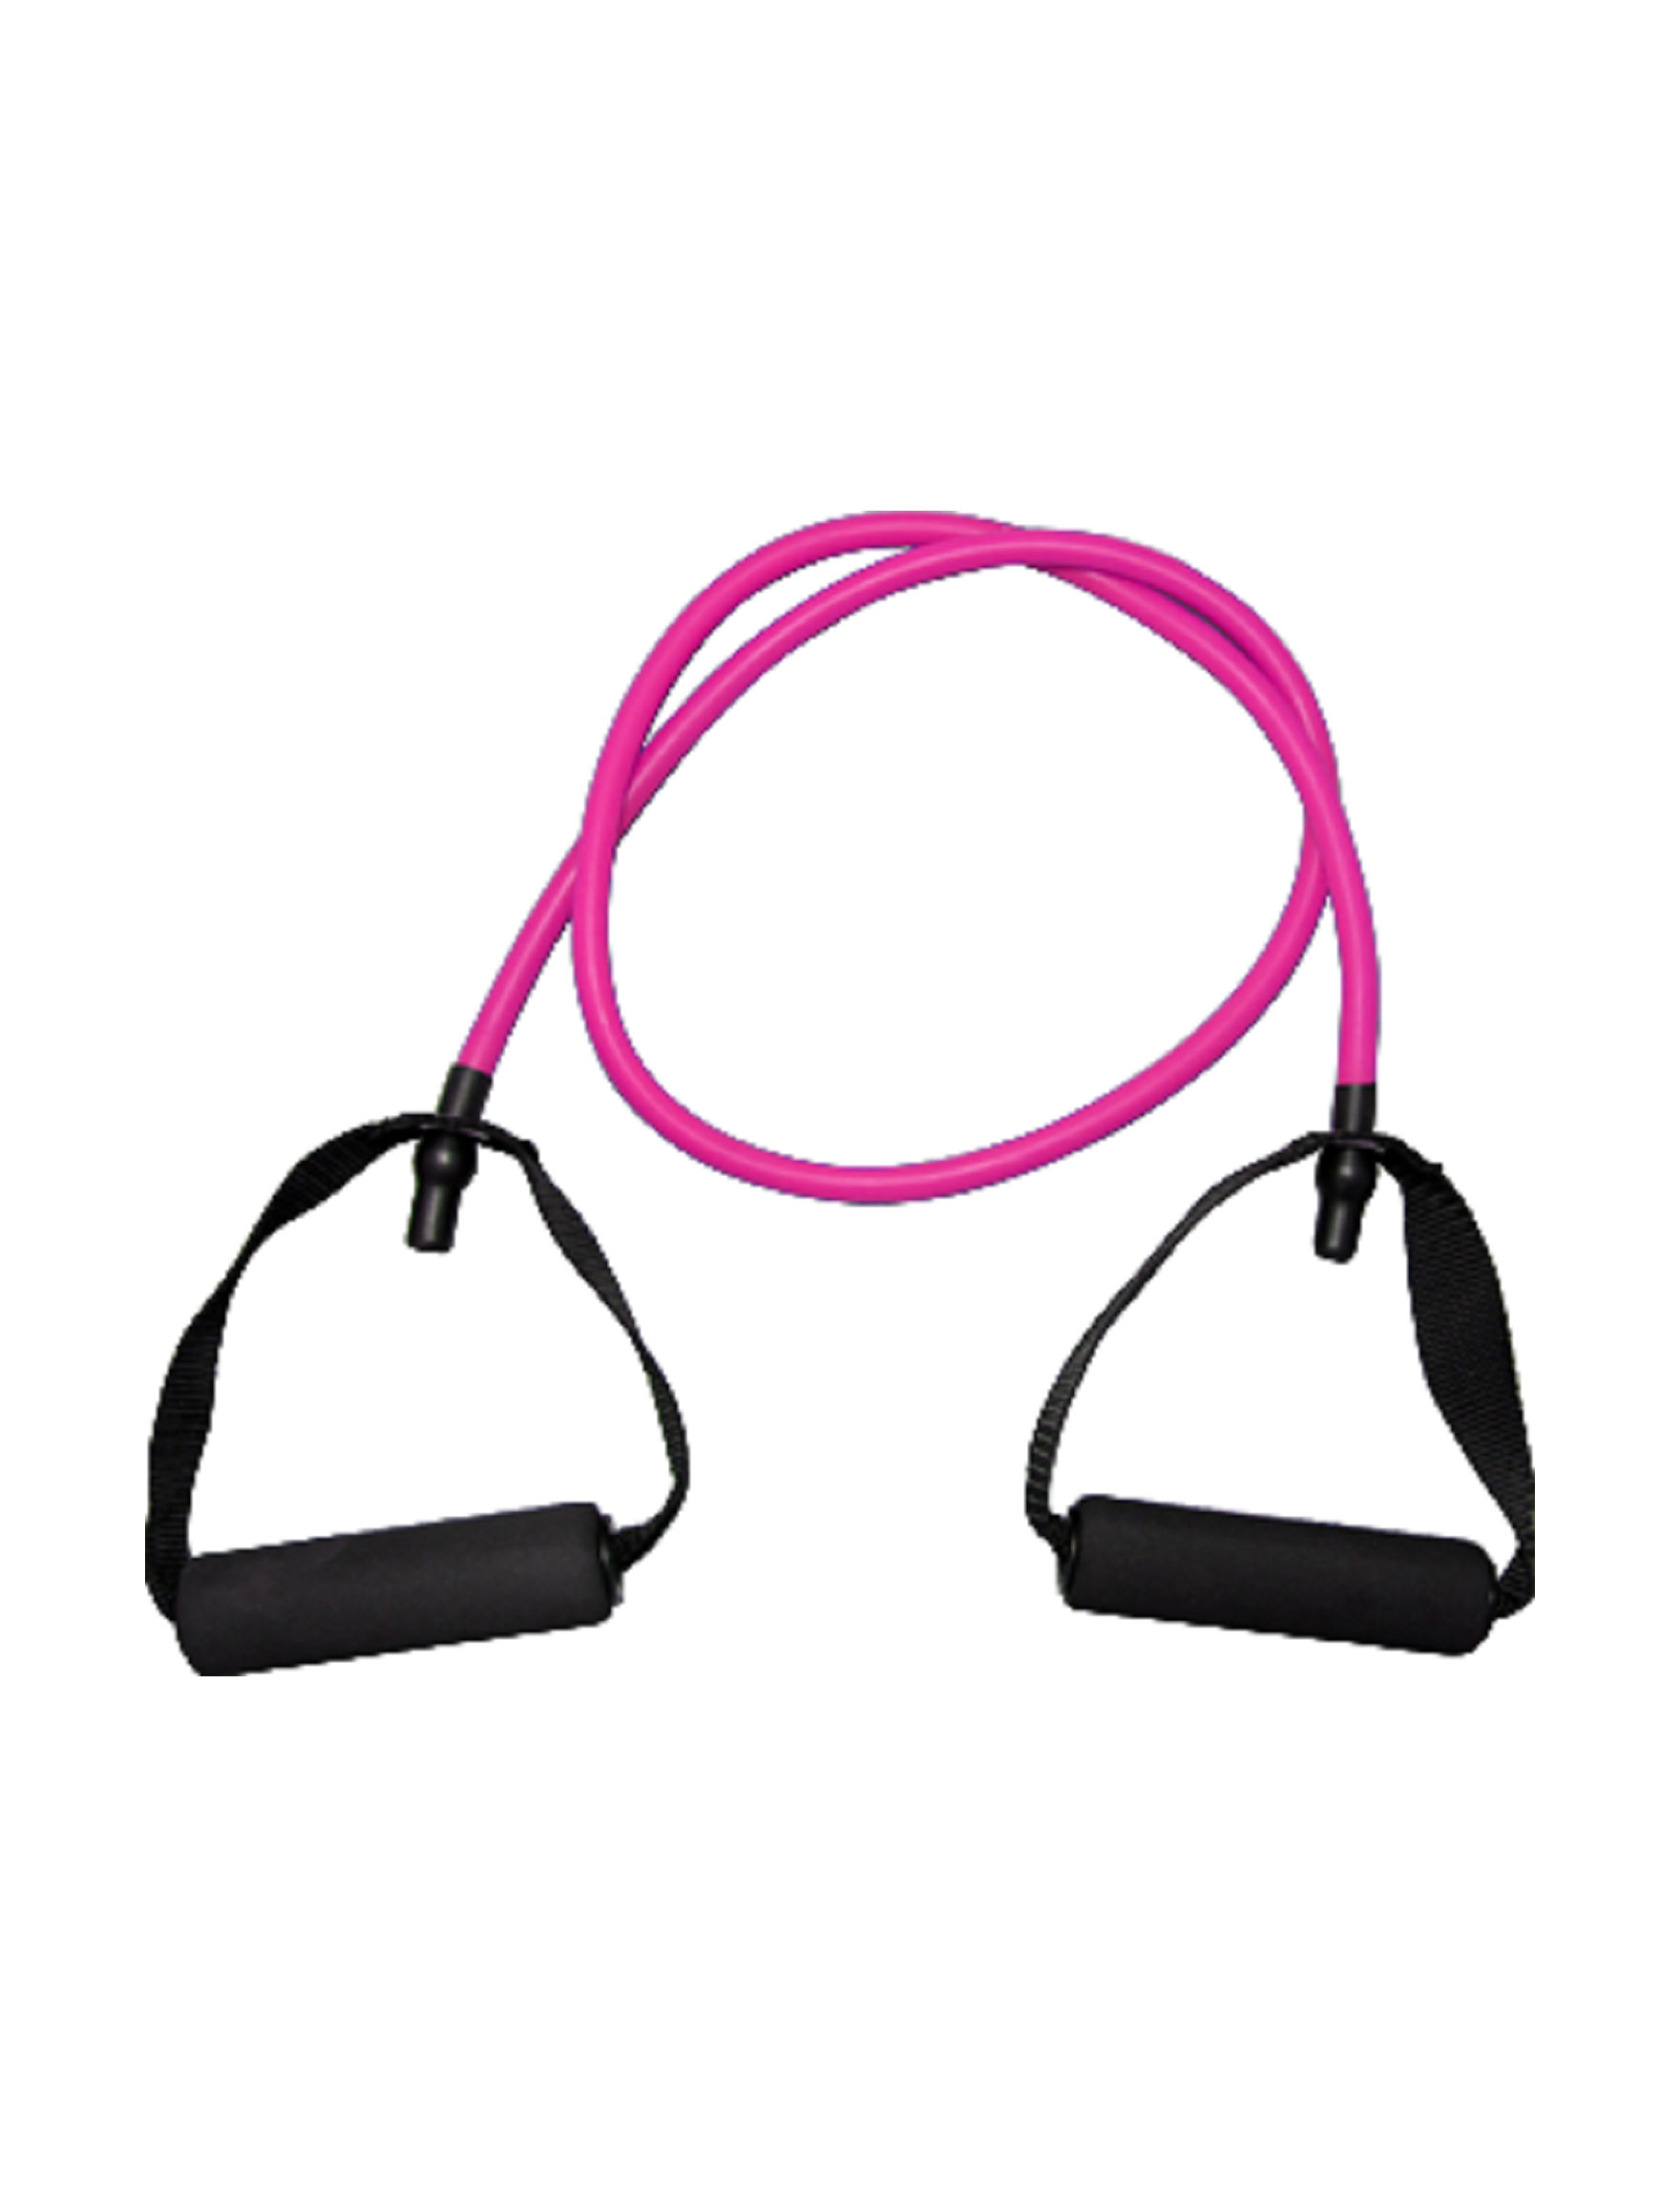 Gourmet Home Pink Fitness Equipment